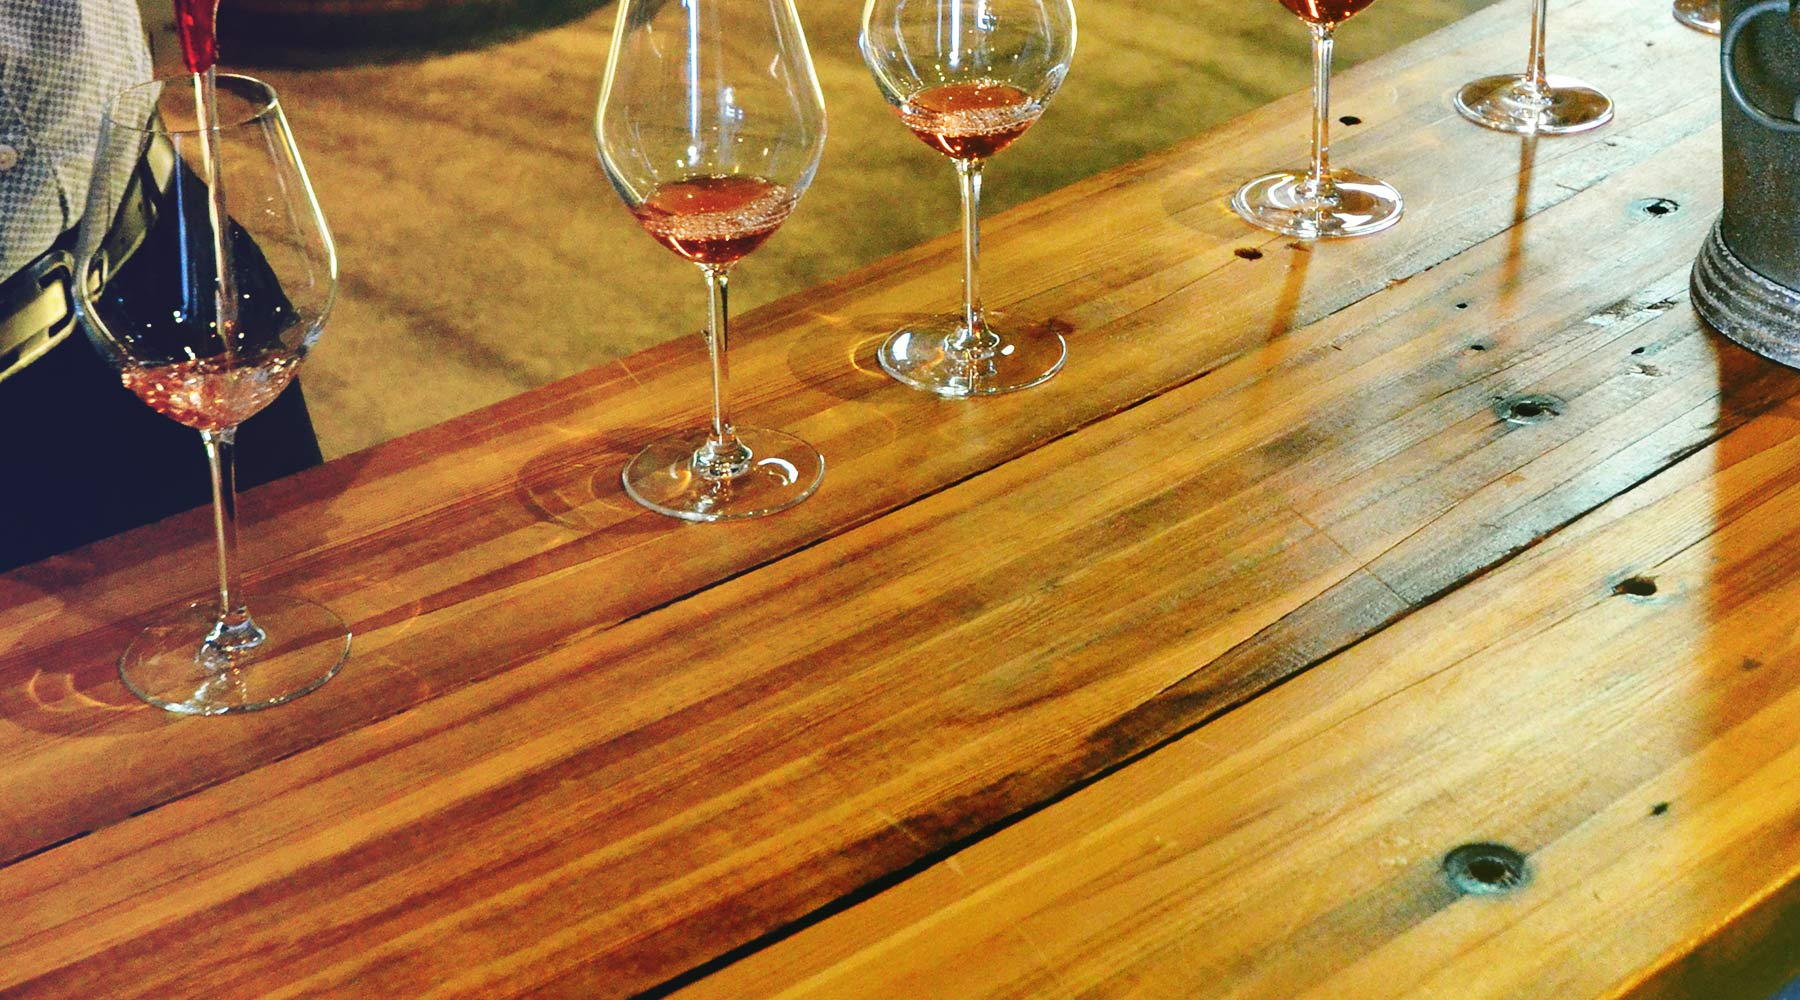 Winemaker's Culinary Series - Blue Mountian Winery | Just Wine